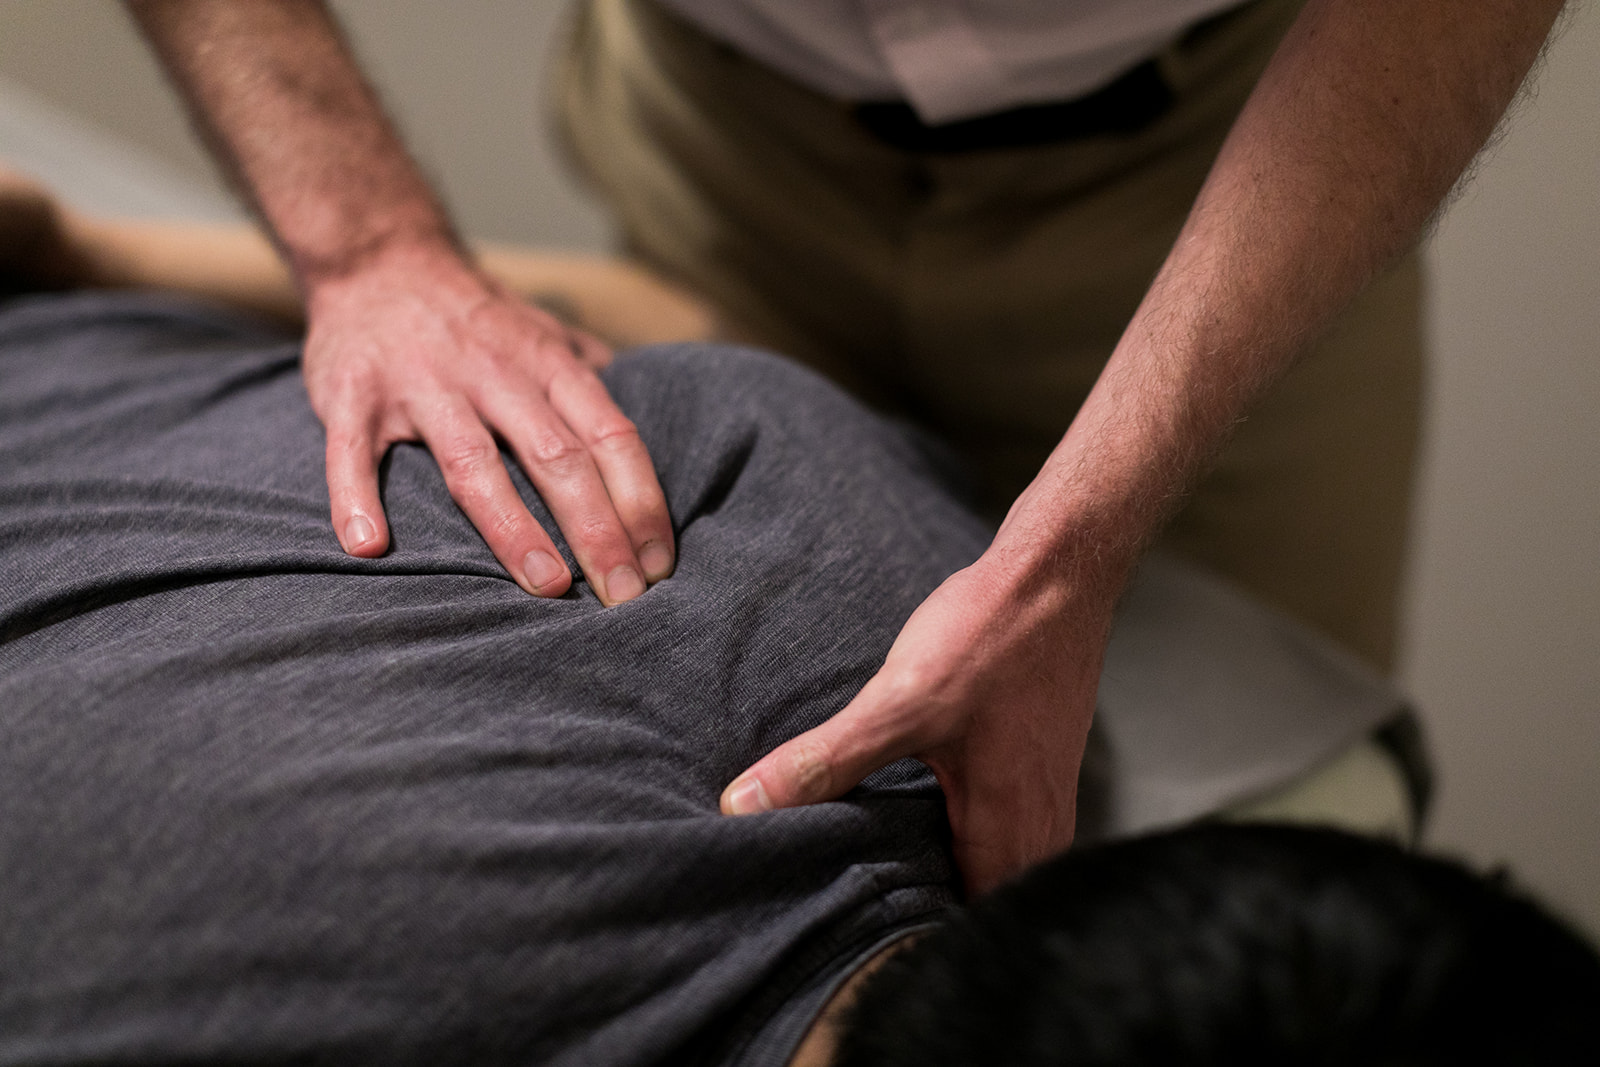 Bodywork - We offer different types of bodywork for rehabilitation, recovery, and relaxation.